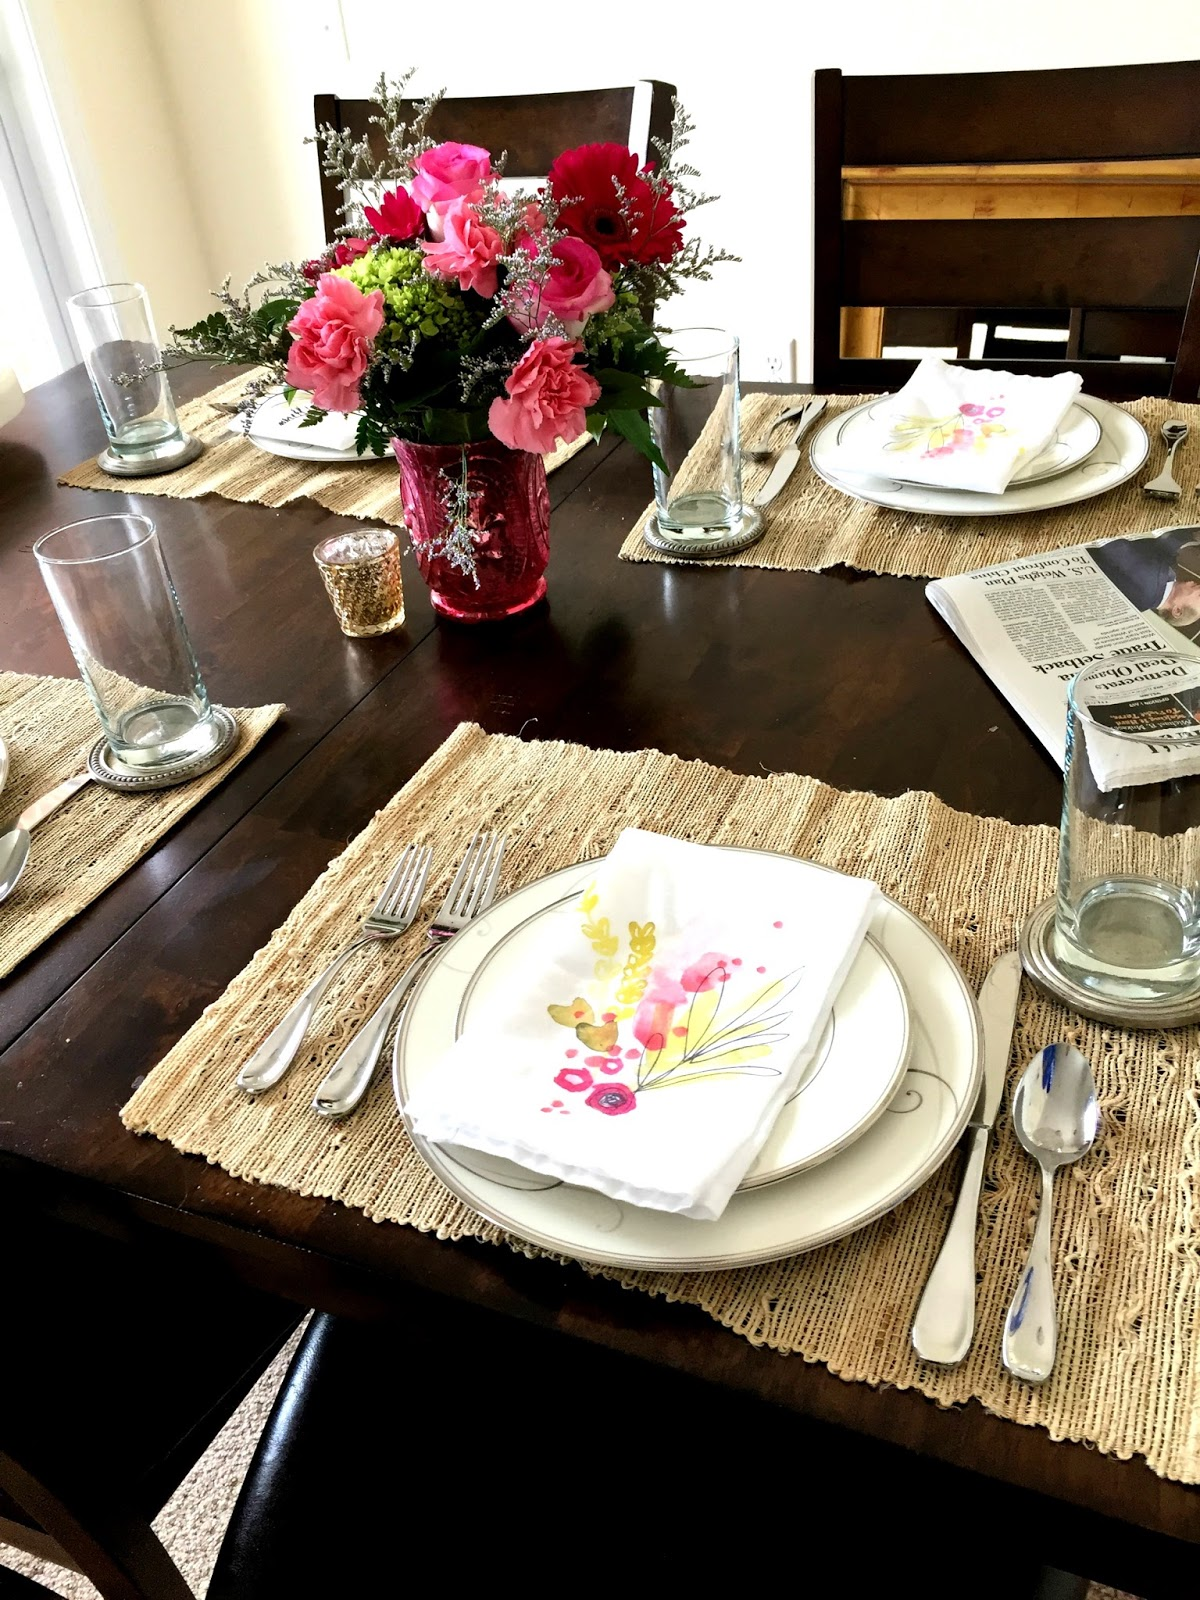 ROSYRILLI.COM A simple table setting with DIY napkins